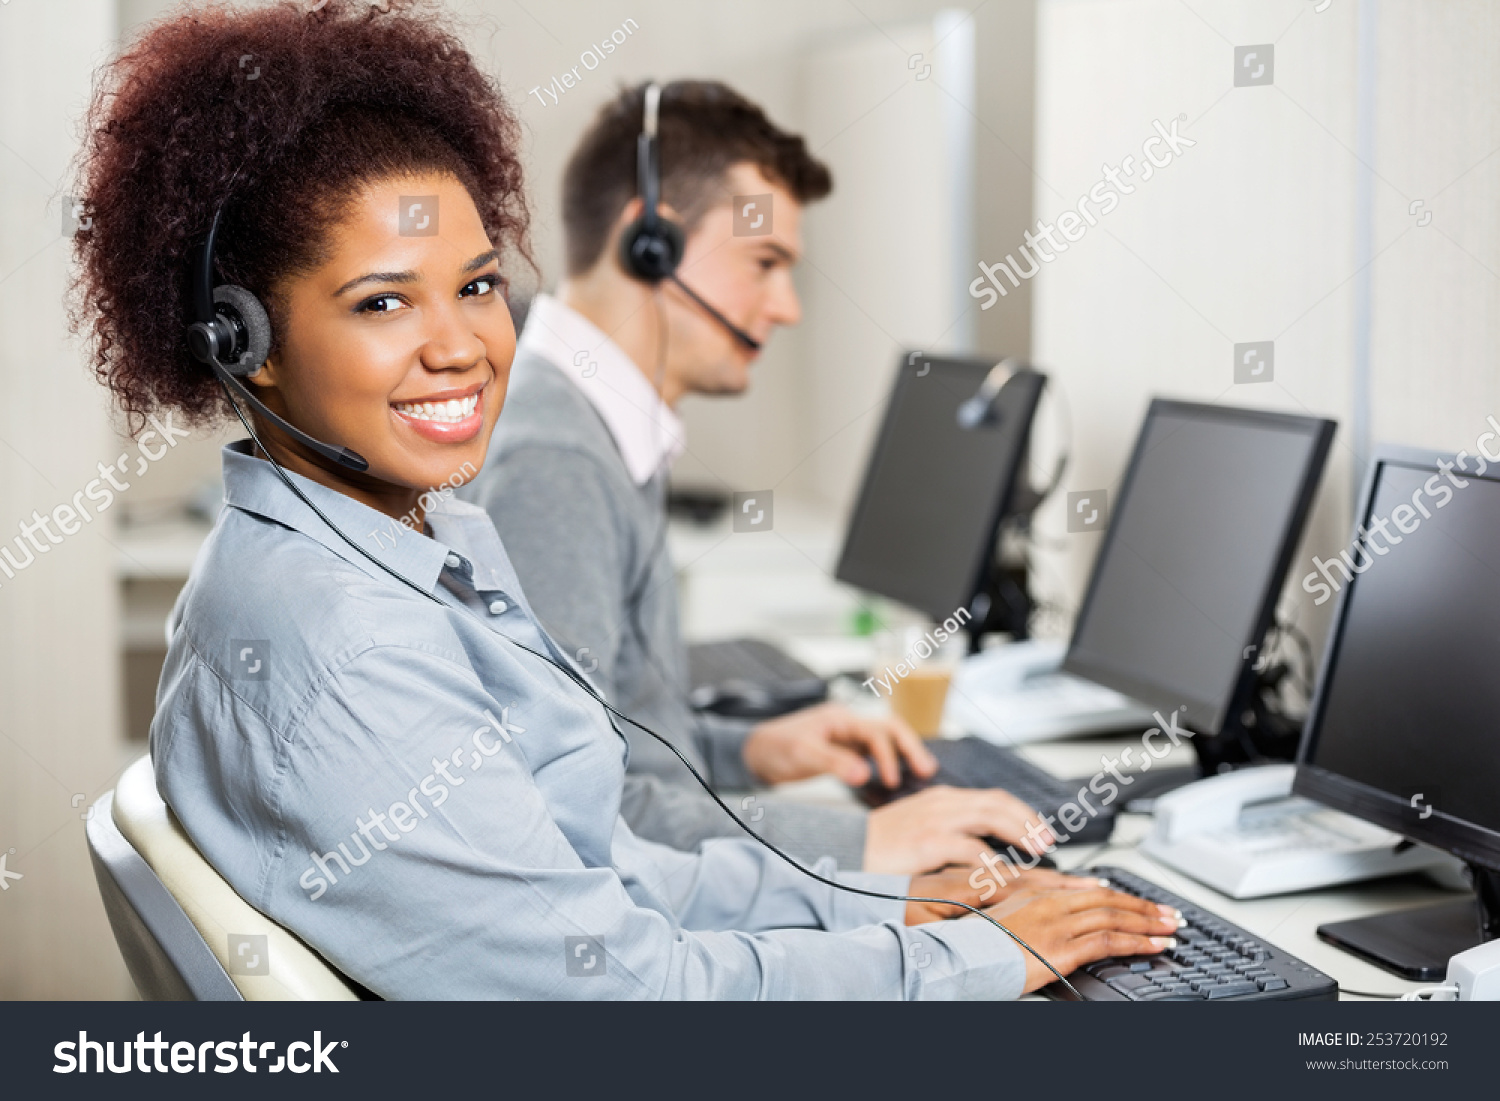 portrait smiling female customer service representative stock portrait of smiling female customer service representative male colleague working in office